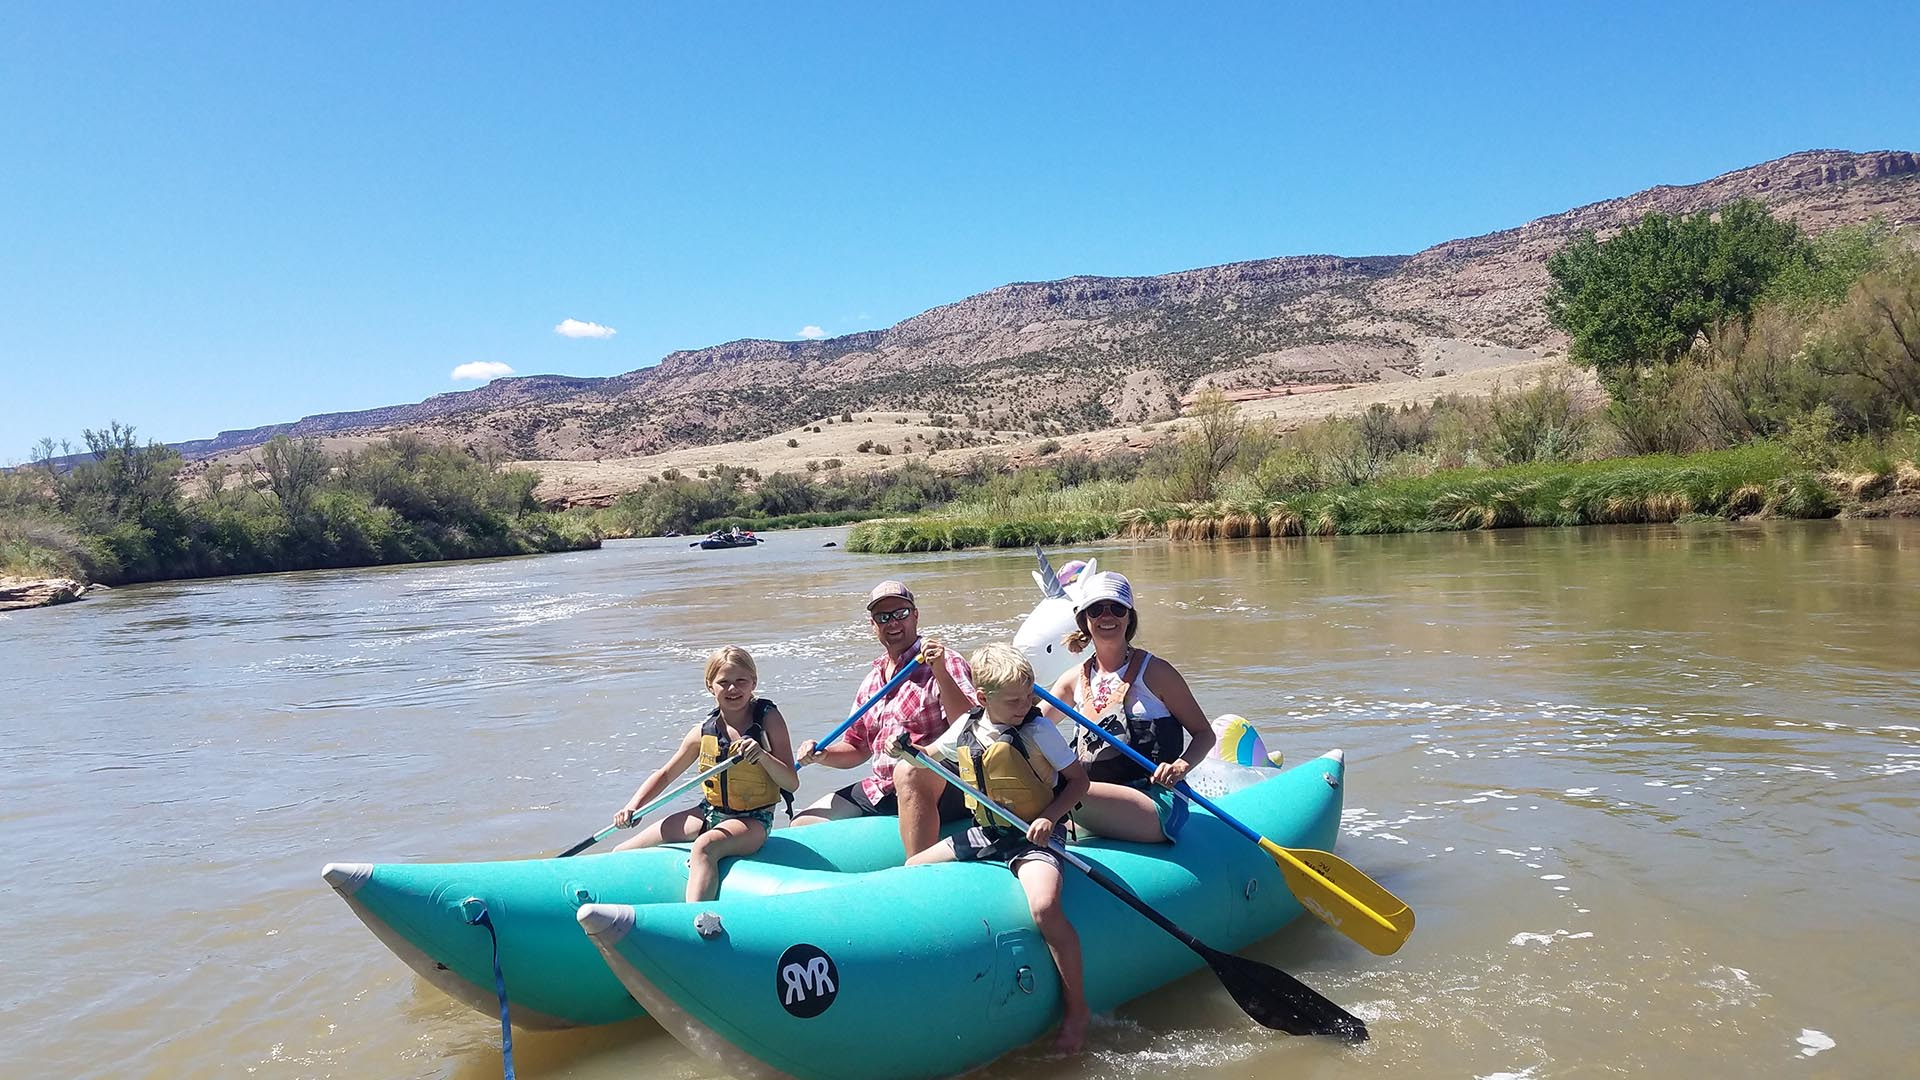 Rafting on the Little Yampa Canyon